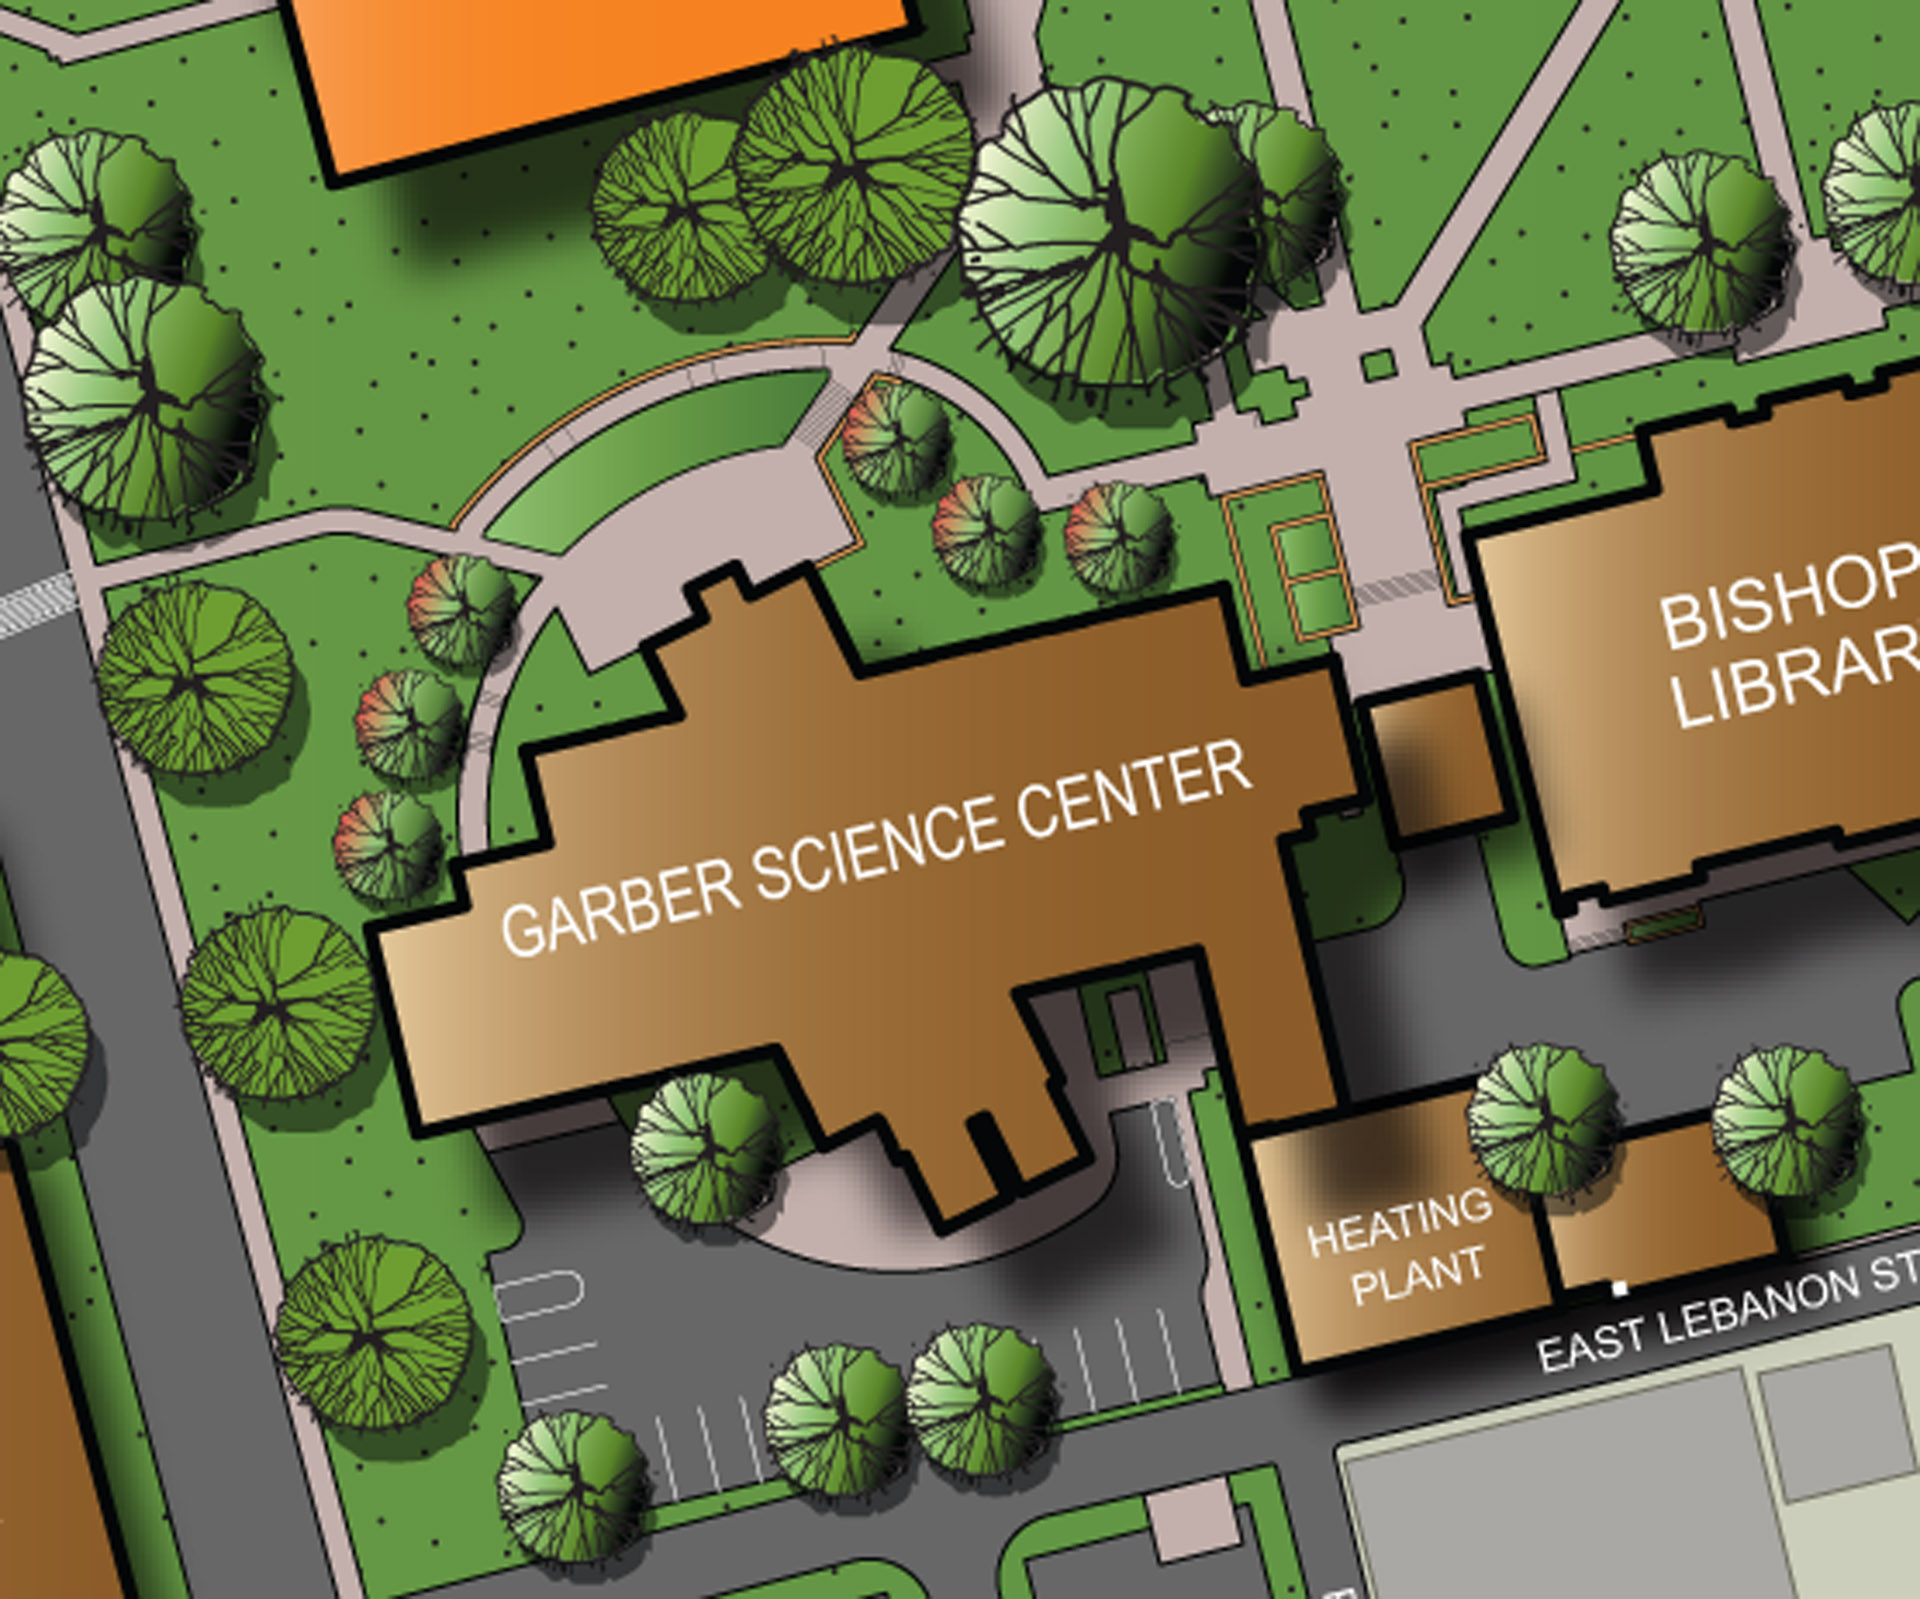 LVC Garber Science Center Plan